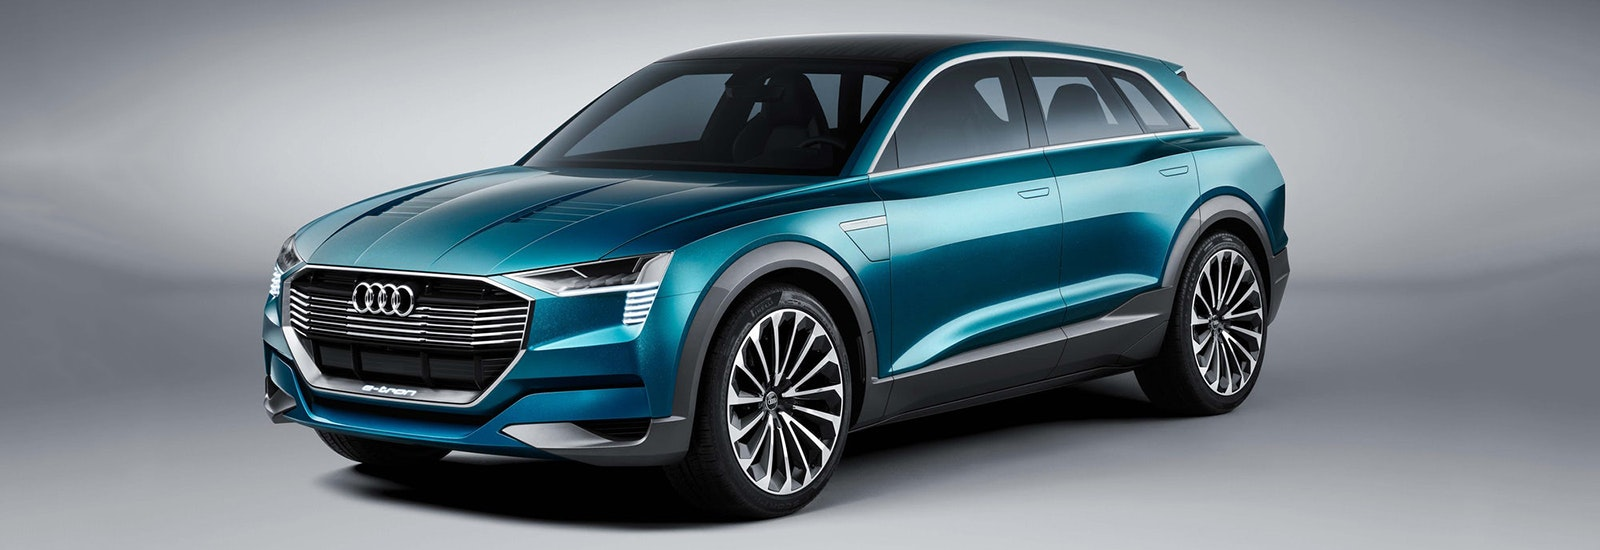 Audi Q6 E Tron Price Specs And Release Date Carwow